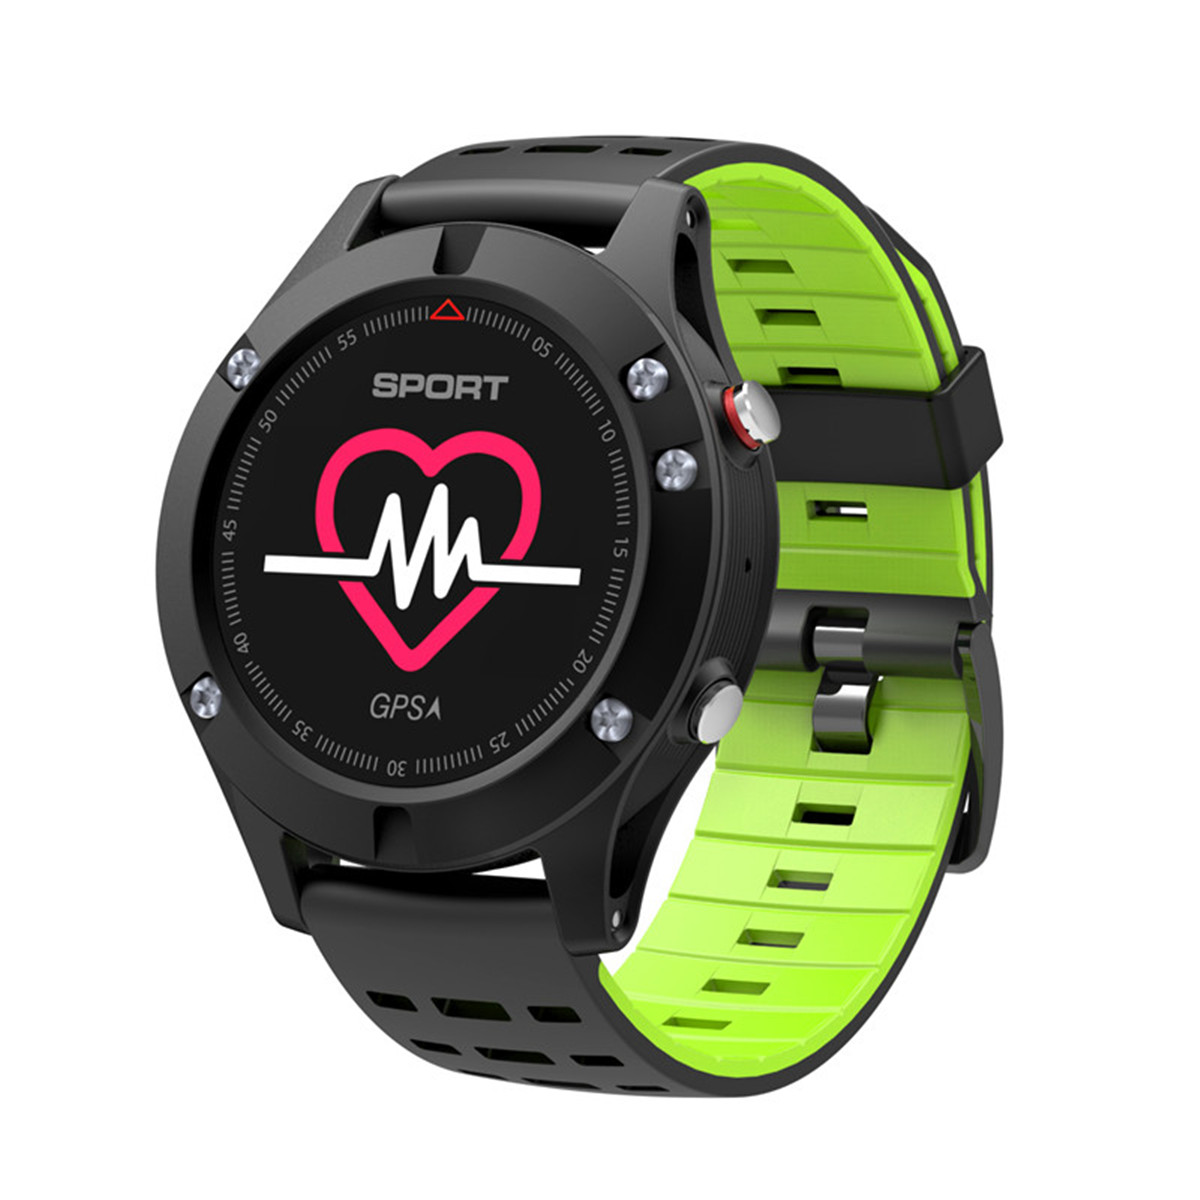 Smart Watch Men OGEDA.1 <font><b>F5</b></font> Android Smartwatch GPS Heart Rate Monitor Pedometer Temperature Altitude Measurement For IOS Android image